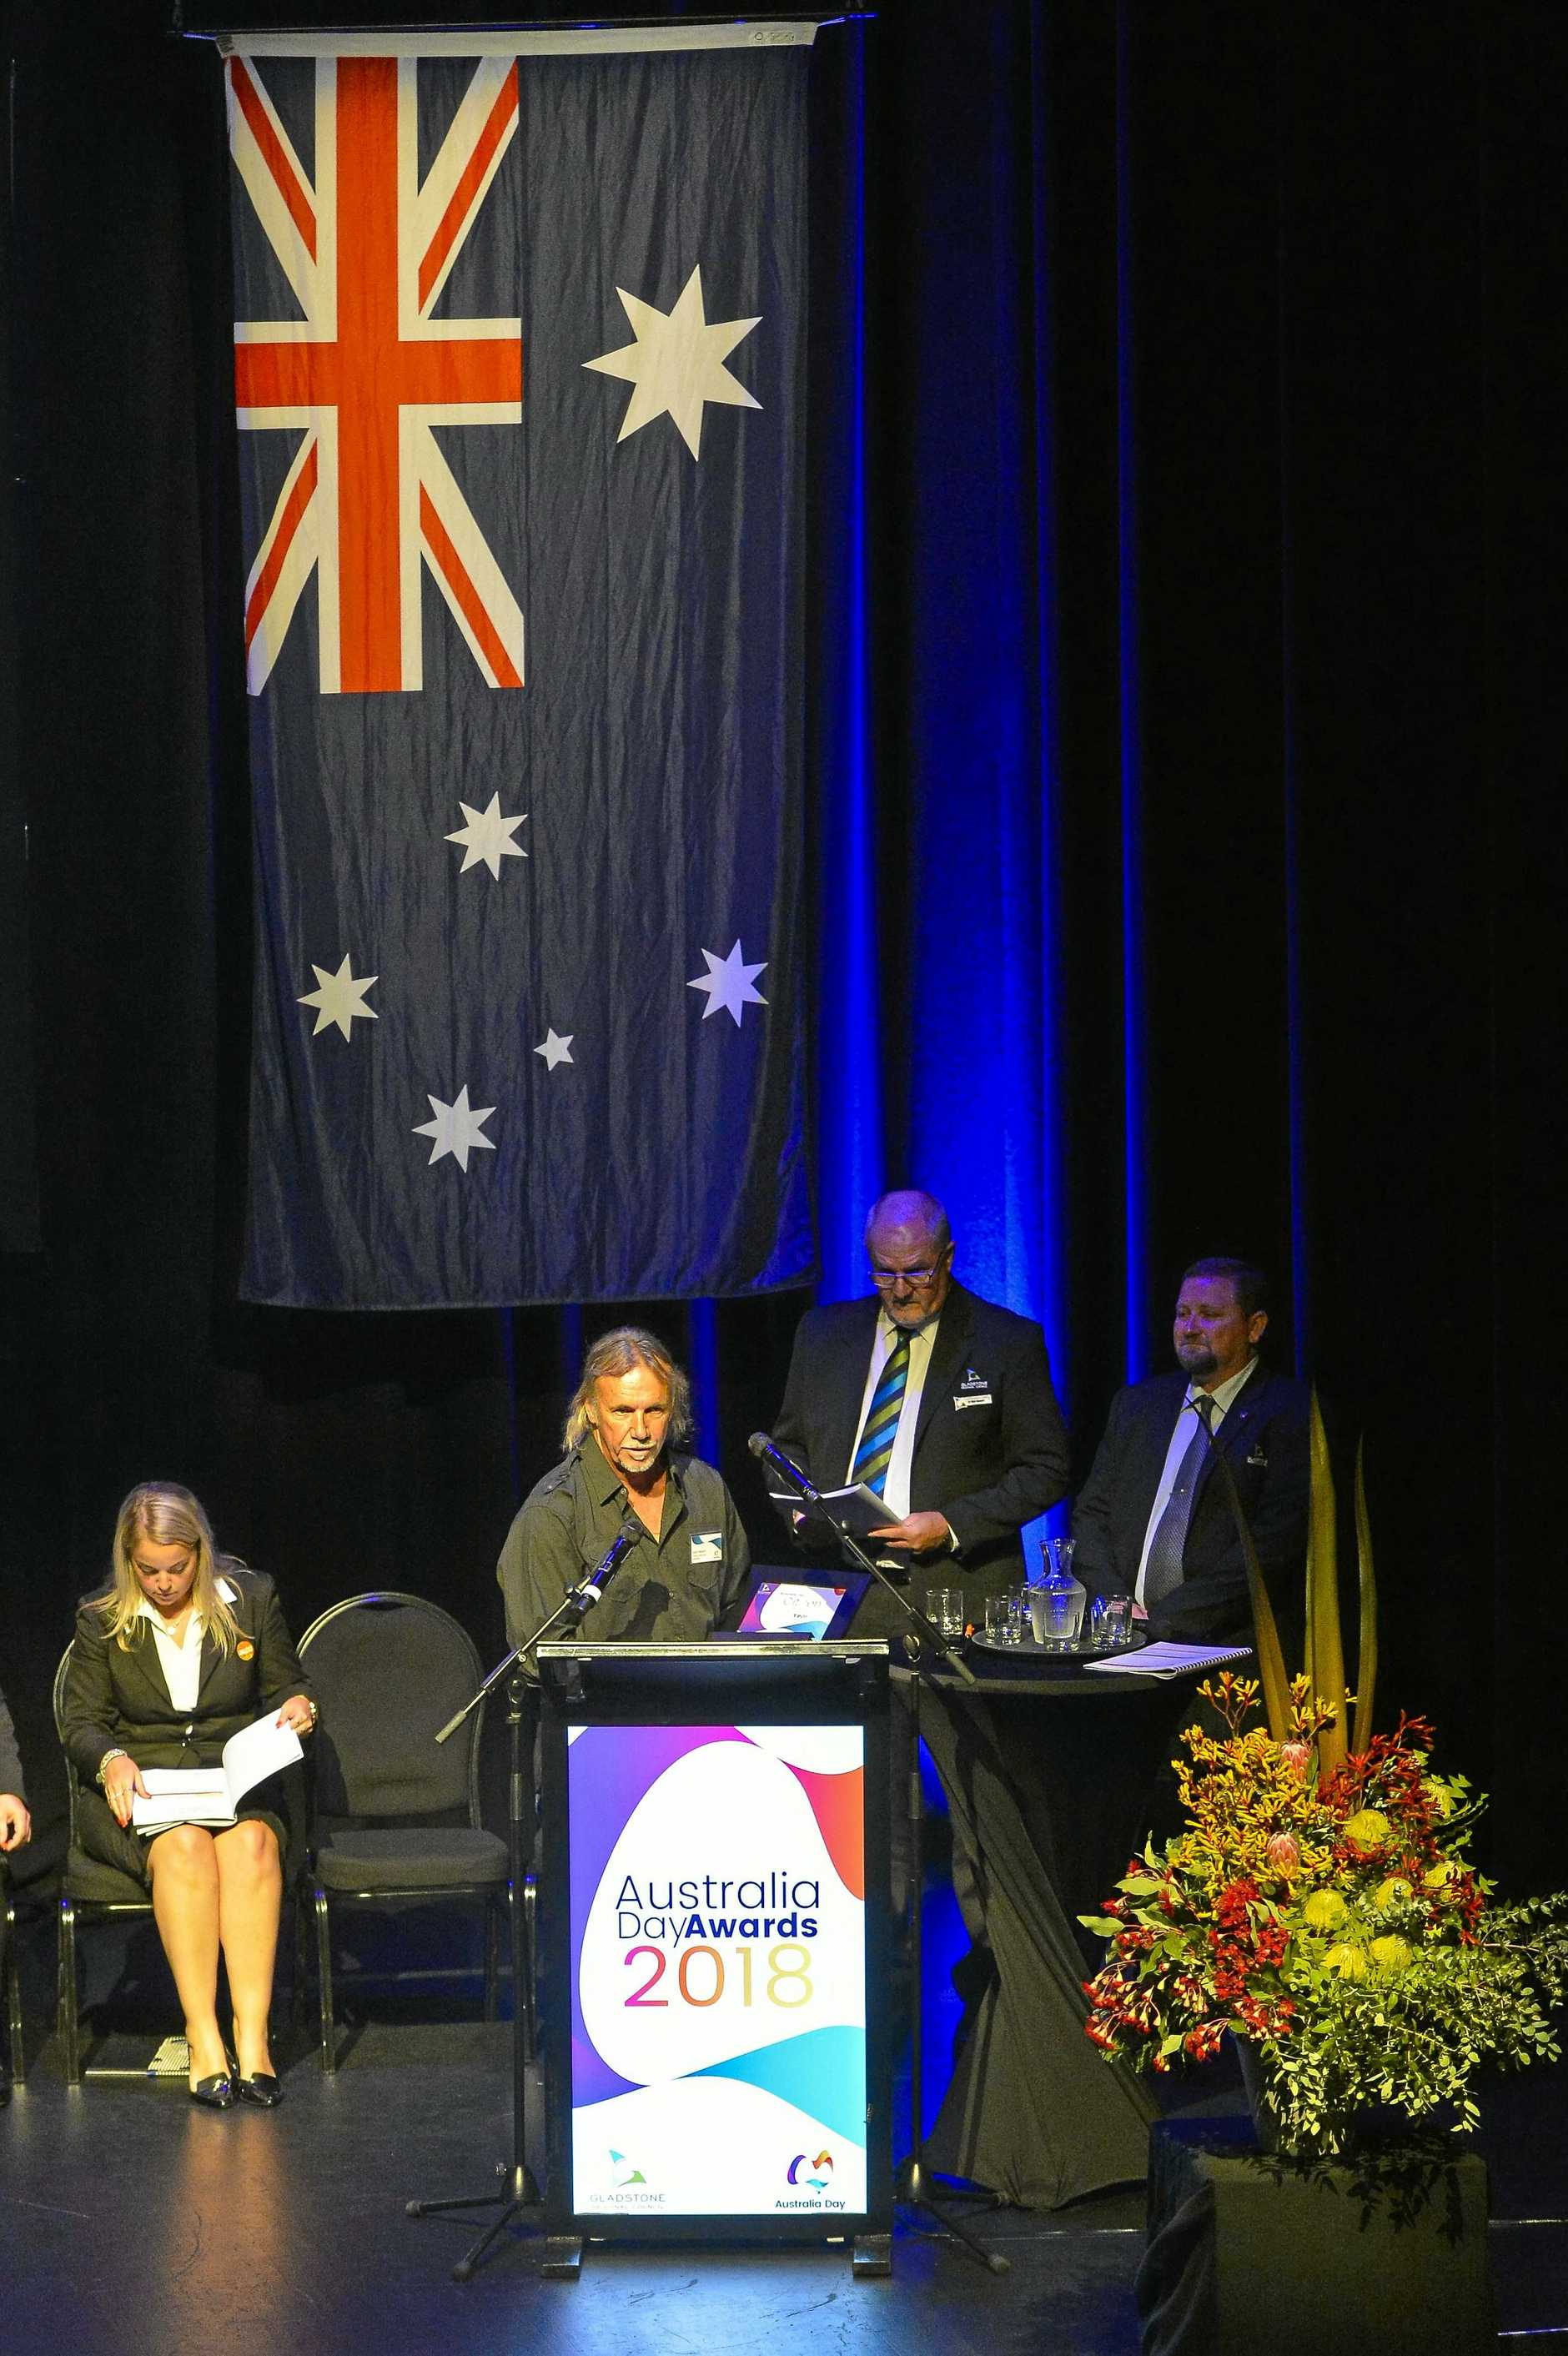 Commercial Fisherman Kevin Watson was the recipient of Gladstone Regional Council's Citizen of the Year award, at the 2018 Australia Day Awards and Citizenship Ceremony, held at the Gladstone Entertainment and Convention Centre on January 25, 2018.